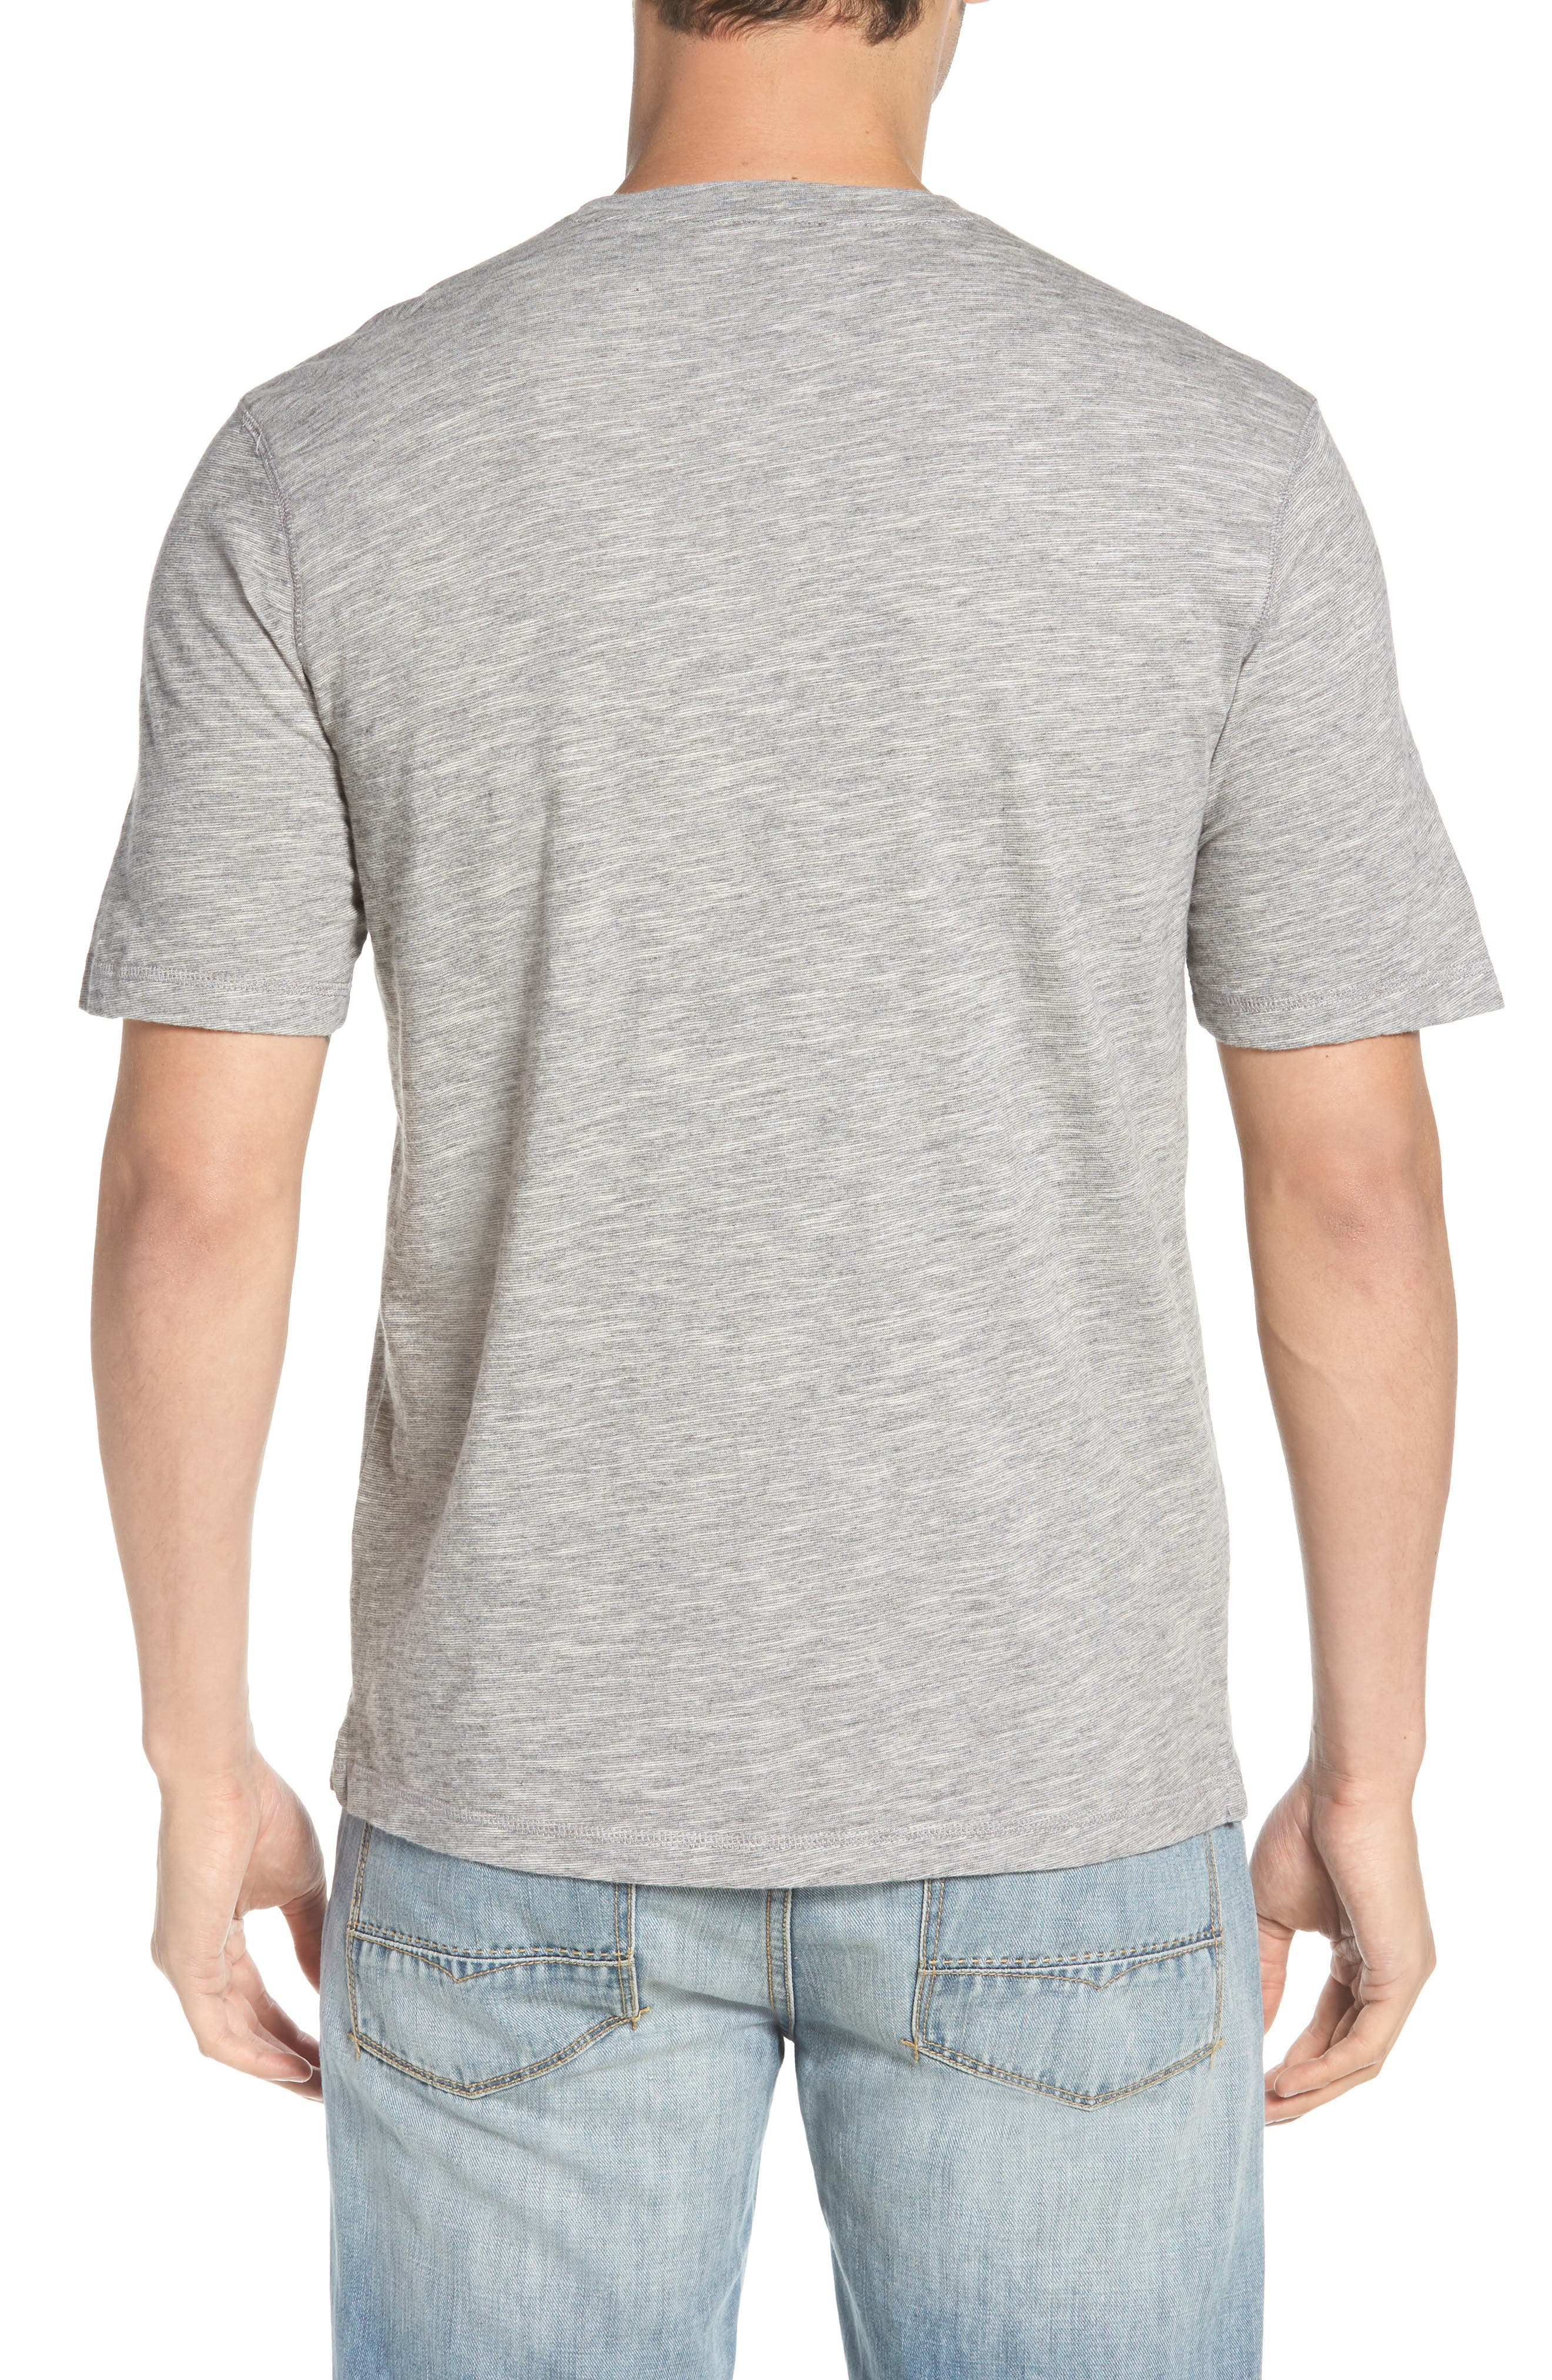 Slubbie Regular Fit Crewneck T-Shirt,                             Alternate thumbnail 2, color,                             Regatta